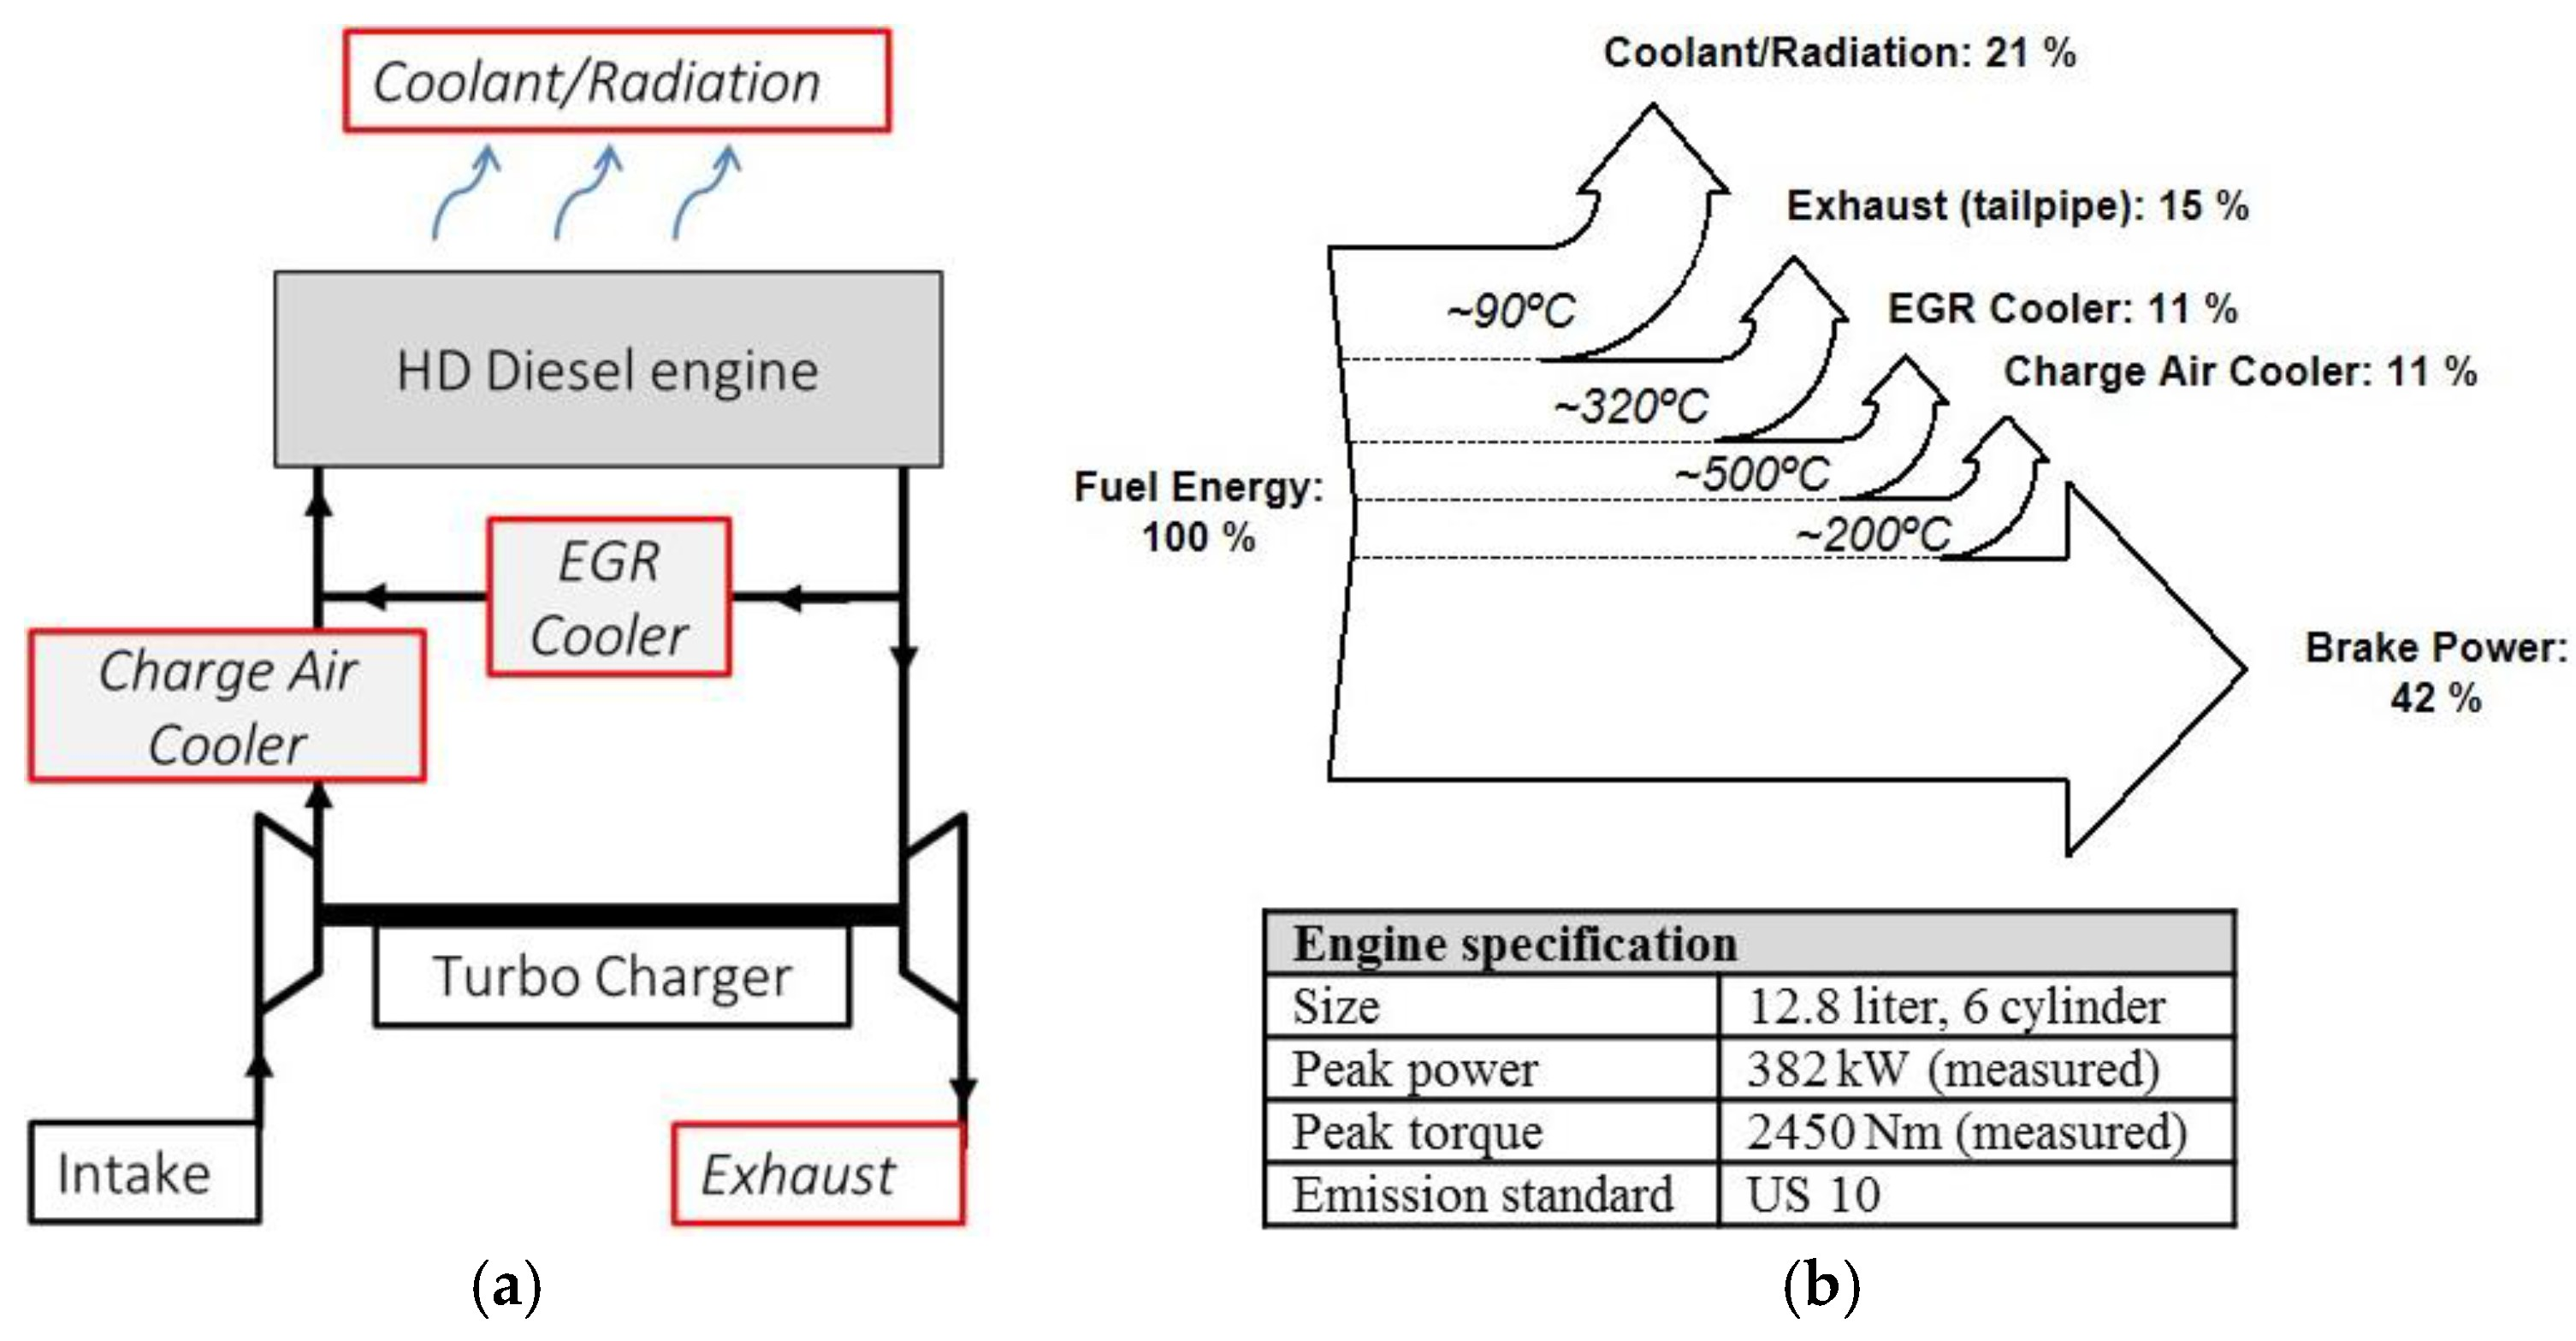 Combination Valve Diagram Energies Free Full Text Of Combination Valve Diagram